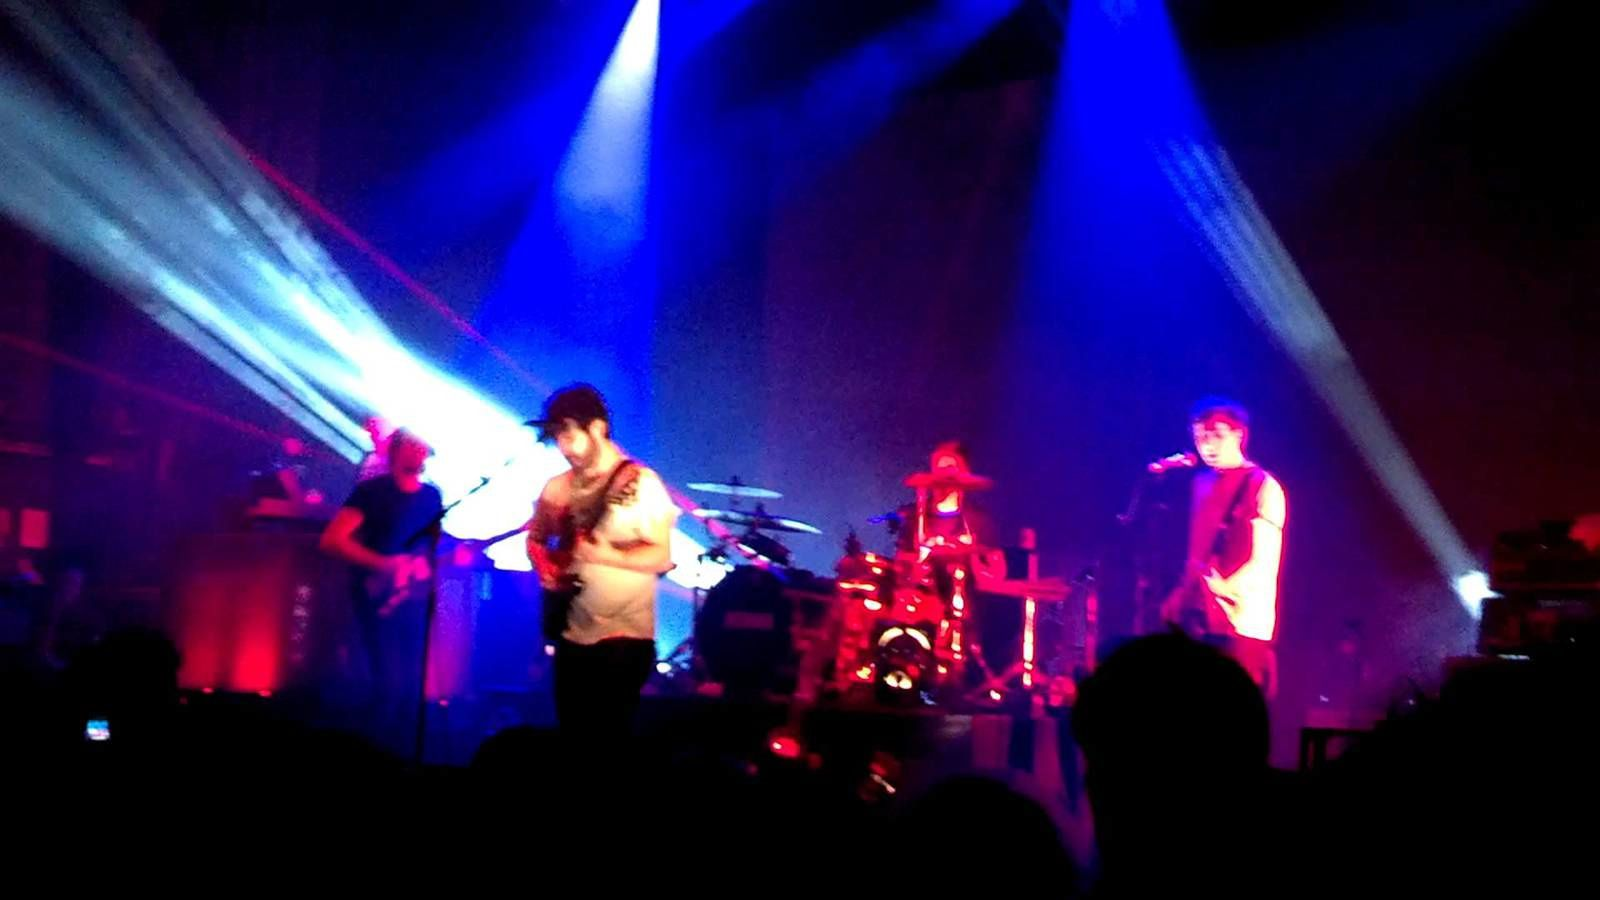 Foals live at Paradiso [FULL]